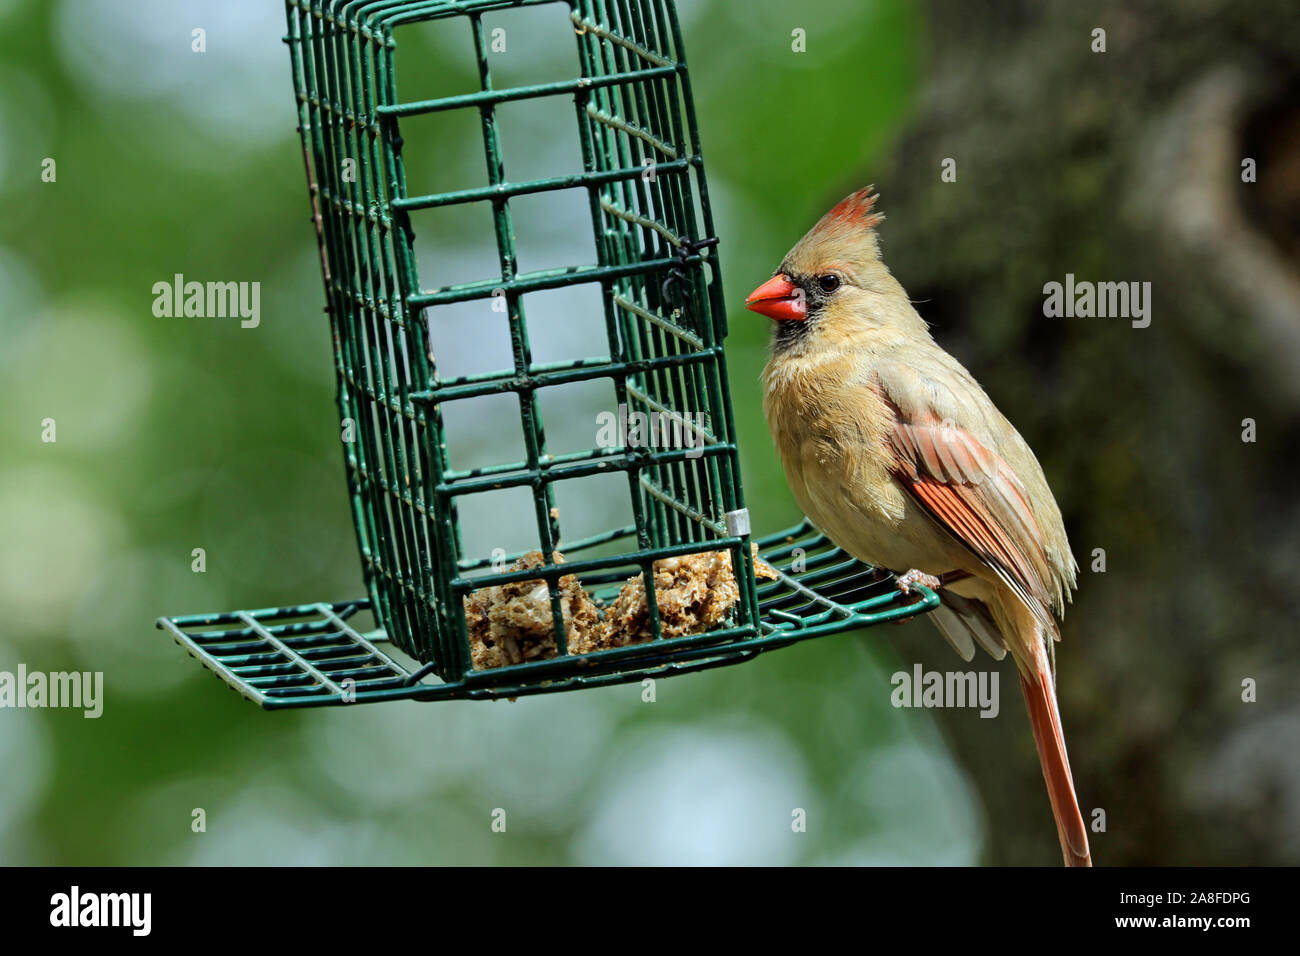 A female Northern cardinal (Cardinalis cardinalis) eating tidbits of a dried mealworm cake at a backyard bird feeder in Spring Stock Photo